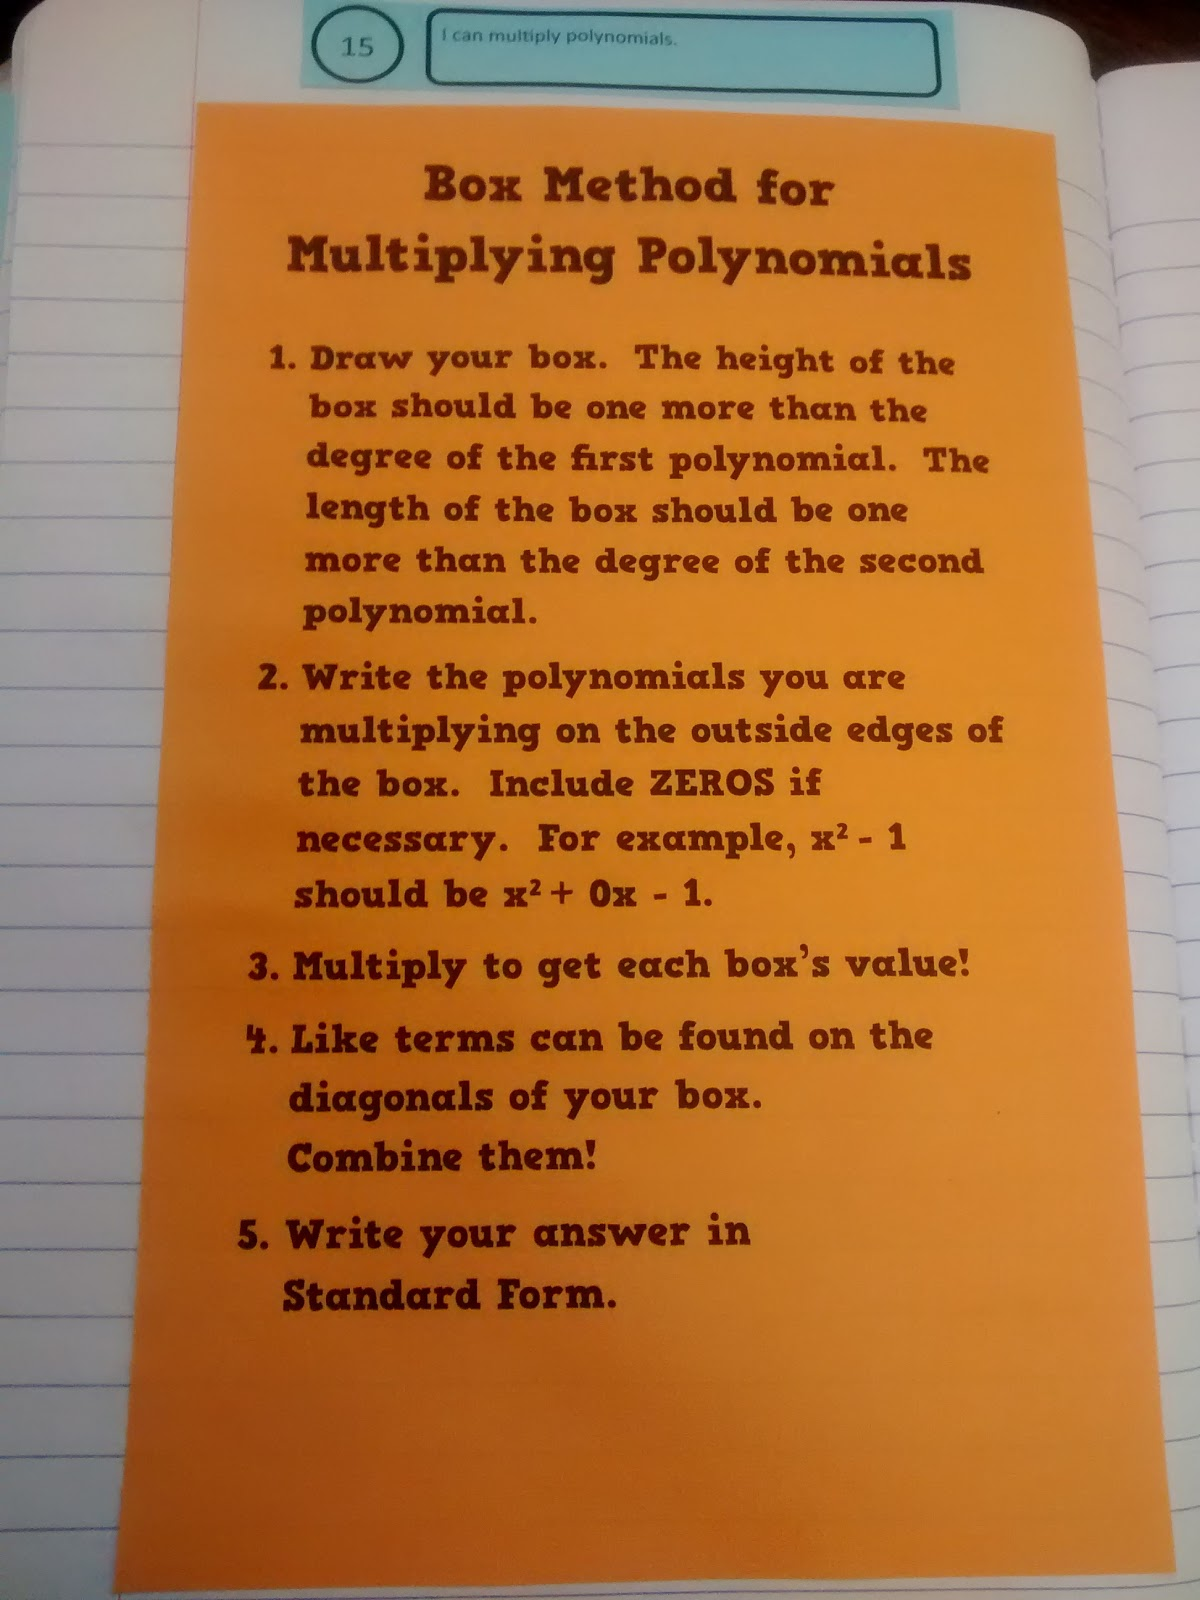 Multiplying Polynomials Coloring Worksheet Answers